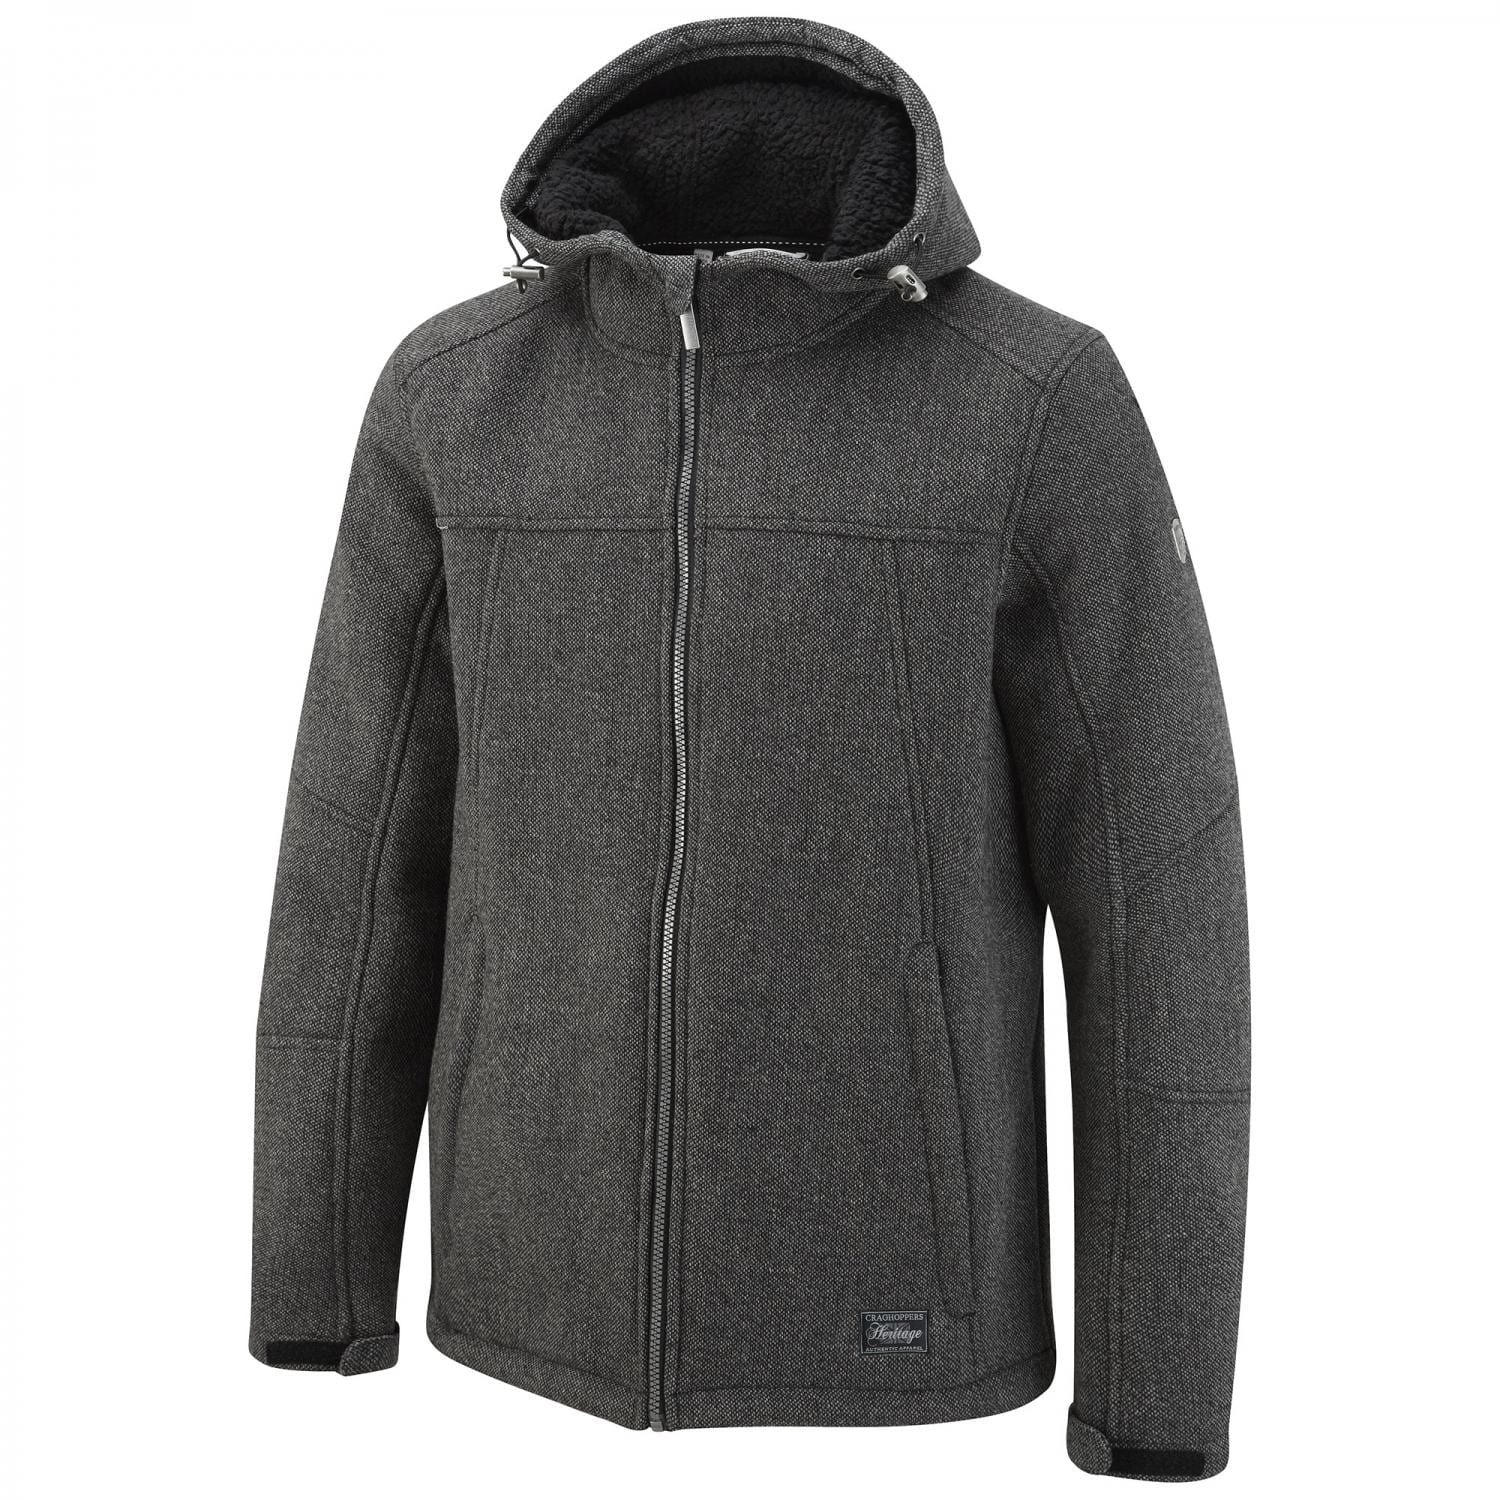 Craghoppers Bowshaw Jacket